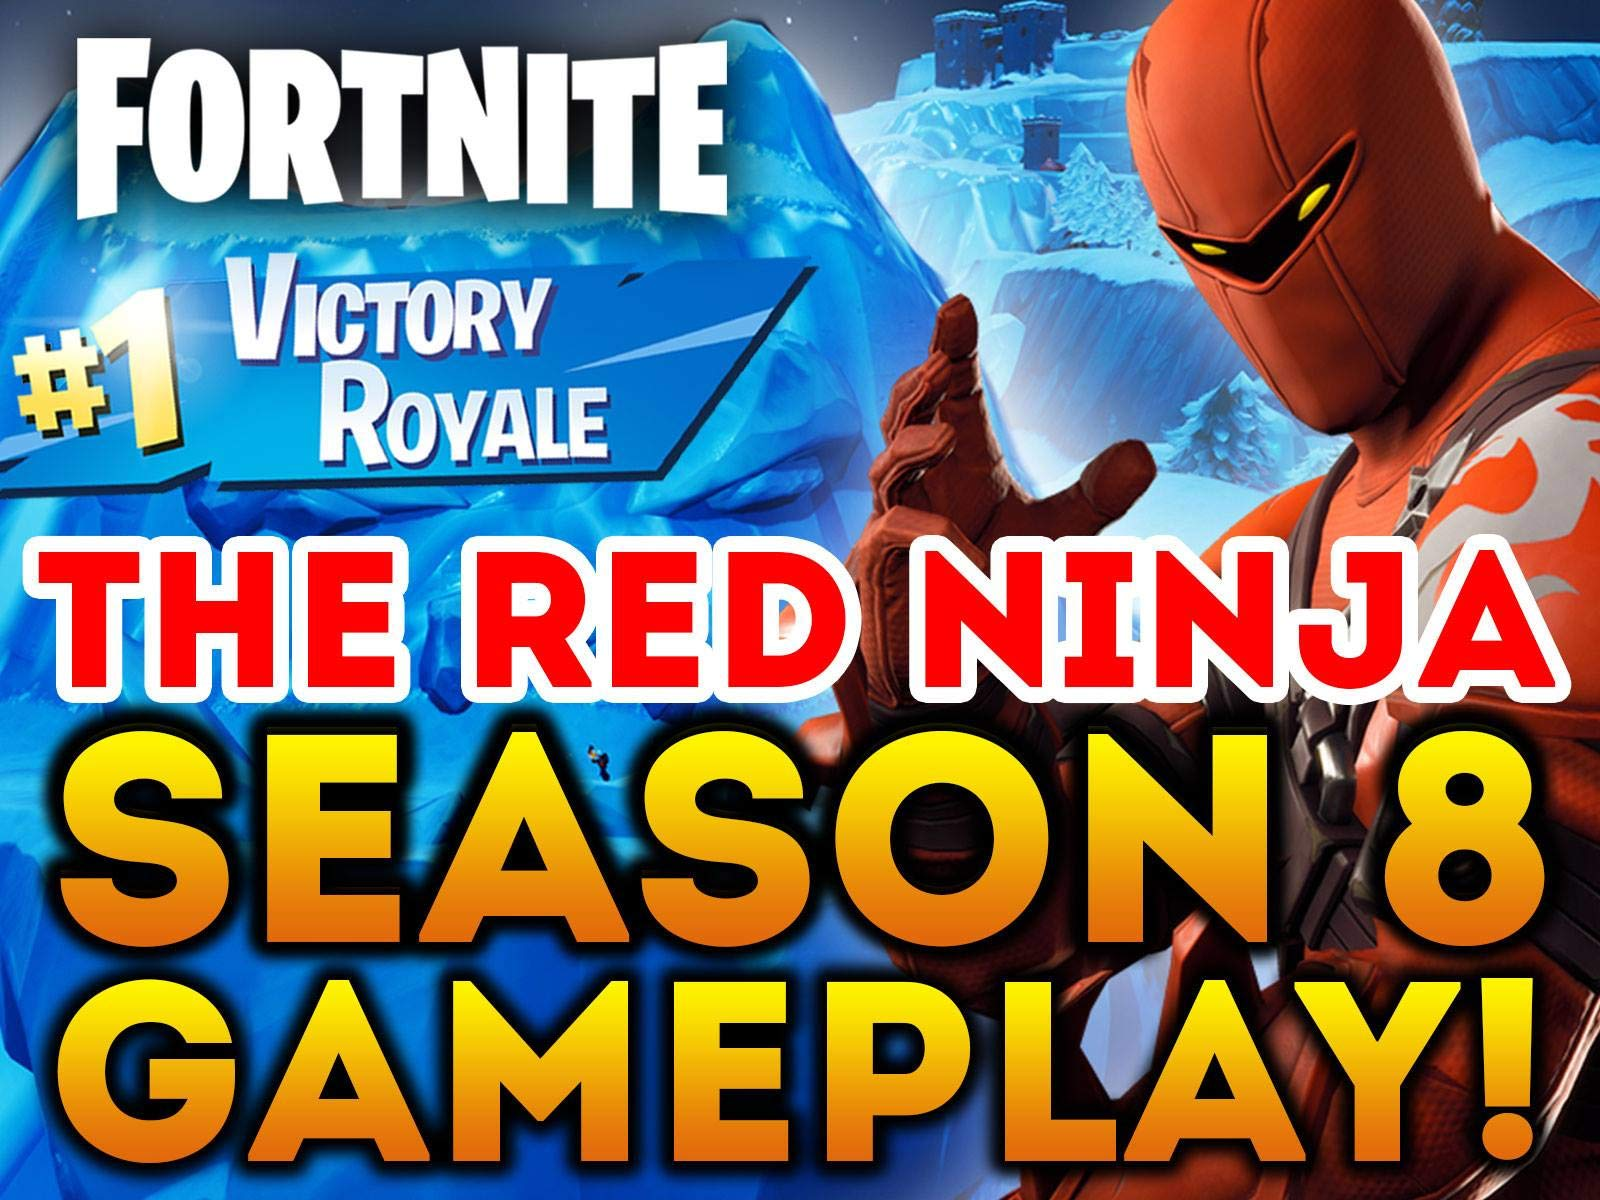 amazon com watch clip fortnite the red ninja season 8 gameplay prime video - victory royale fortnite season 8